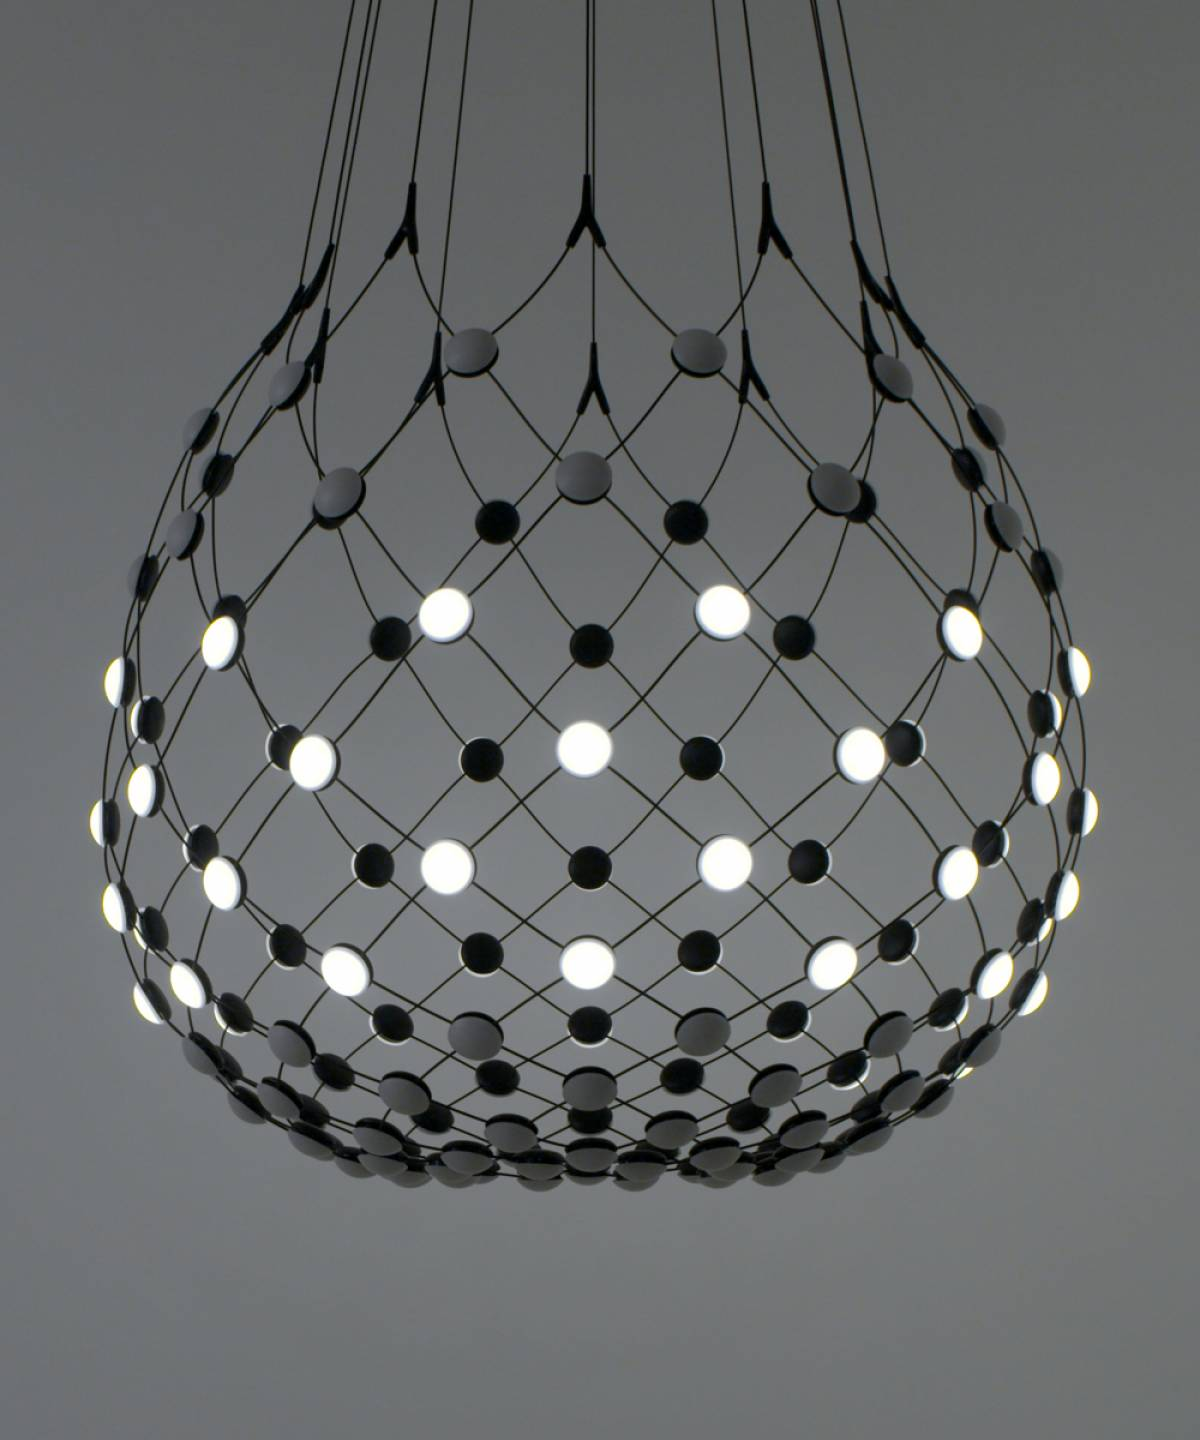 3 Mesh wireless lamp Luceplan